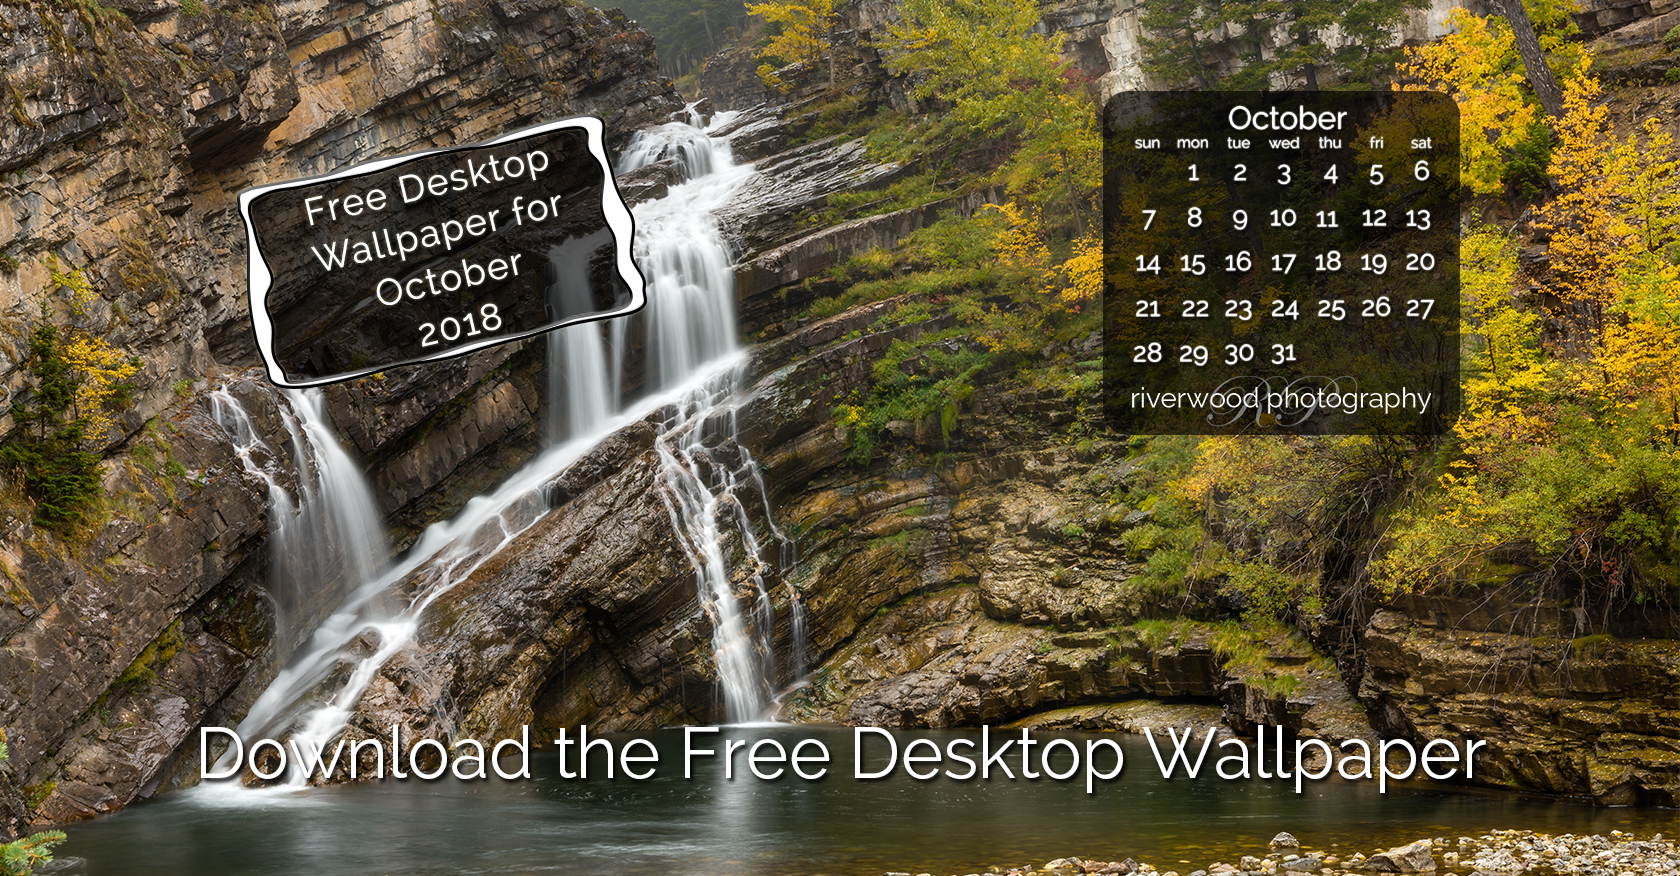 Free Desktop Wallpaper for October 2018 – Cameron Falls